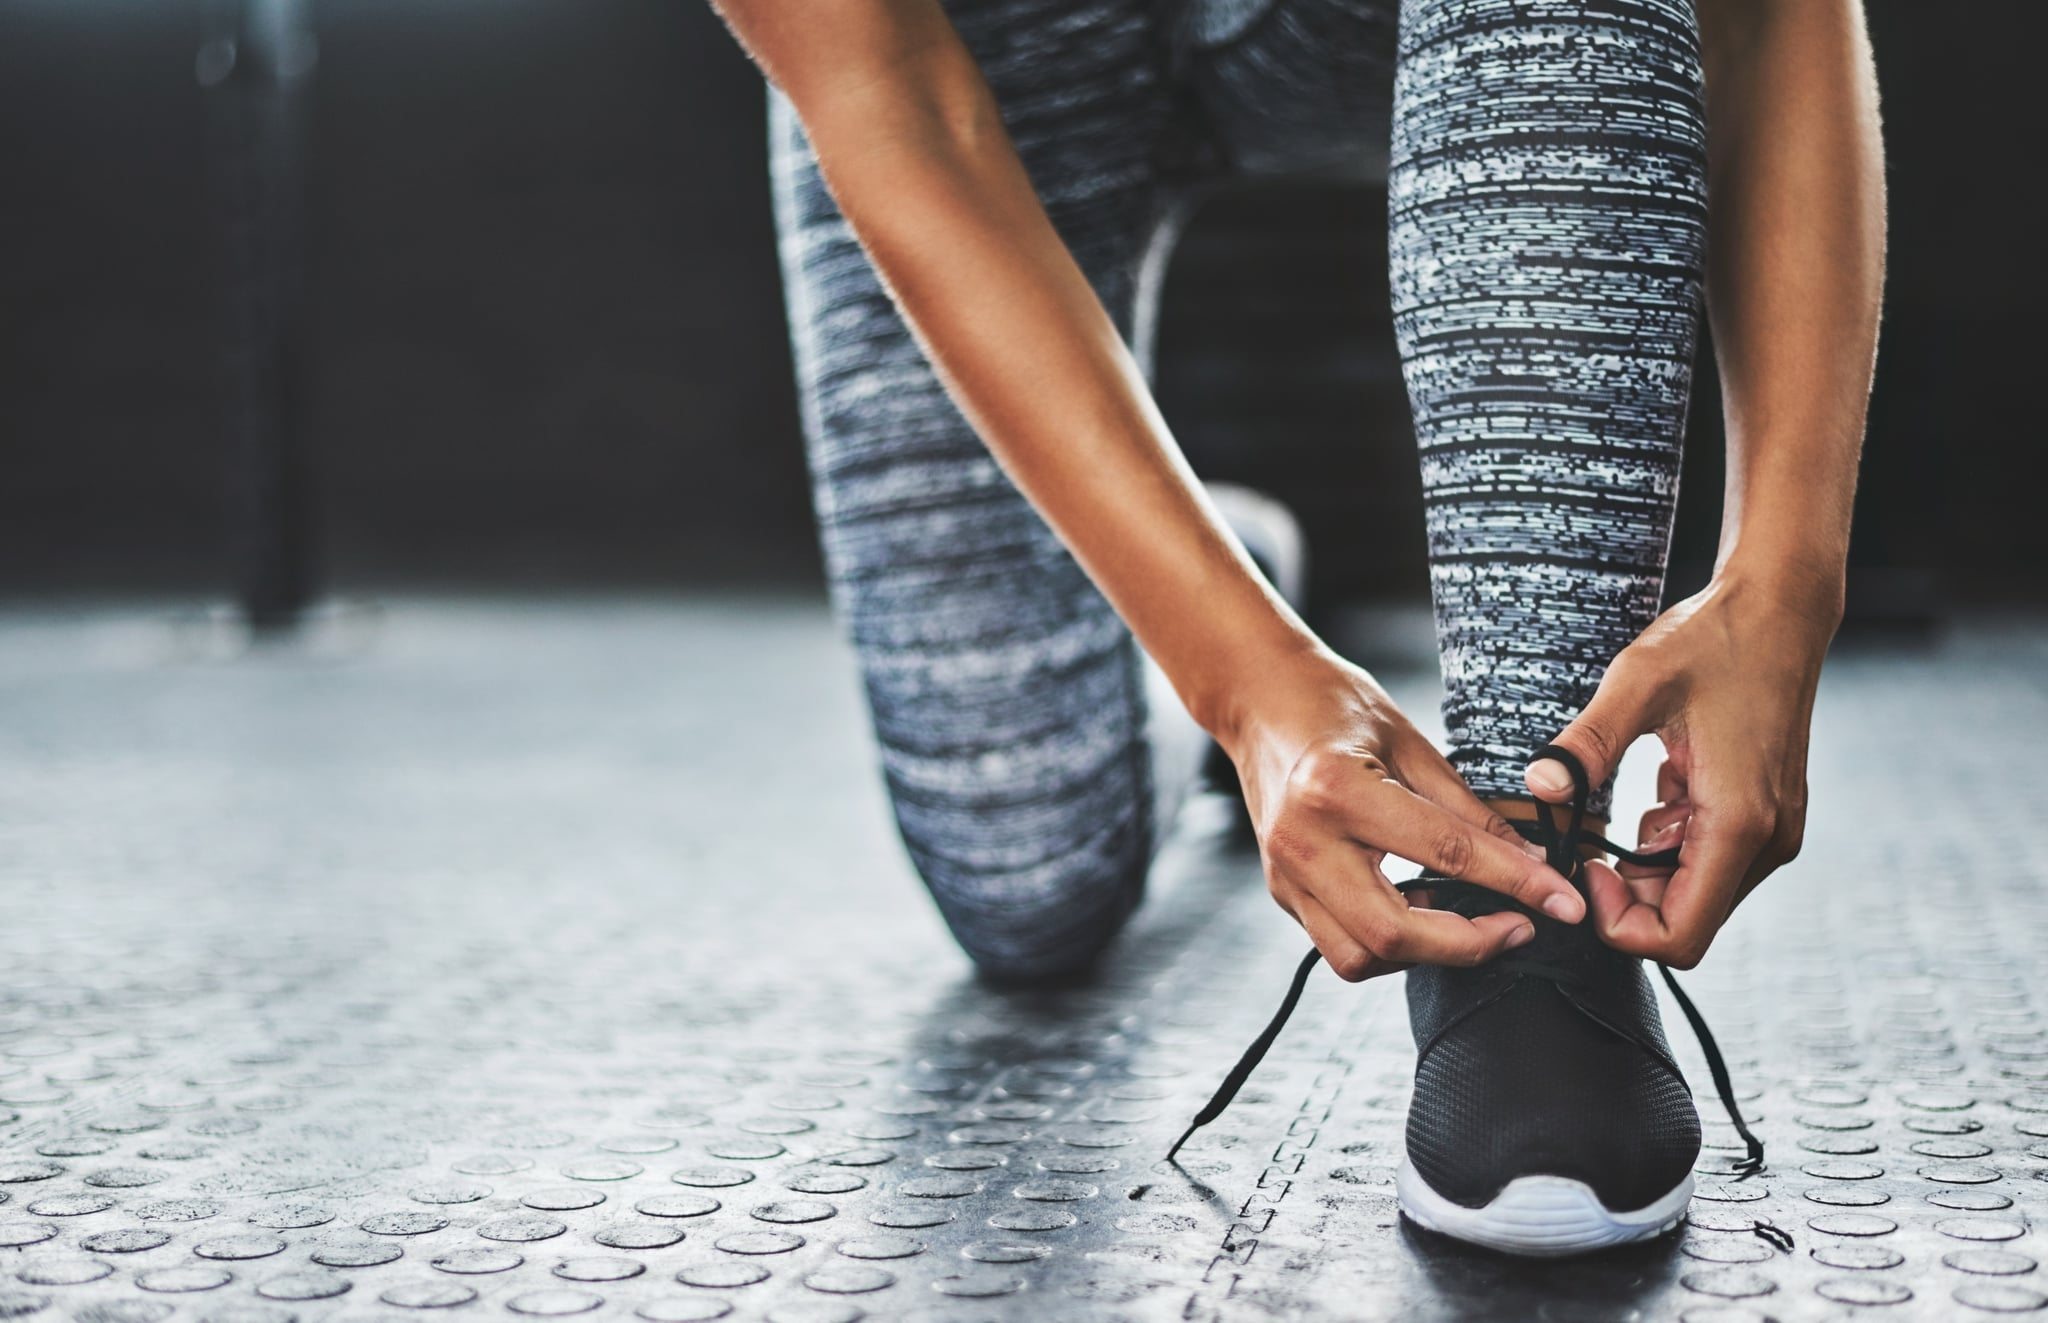 Here's How Many Minutes You'd Need to Walk Each Day to Lose Weight, According to a Trainer